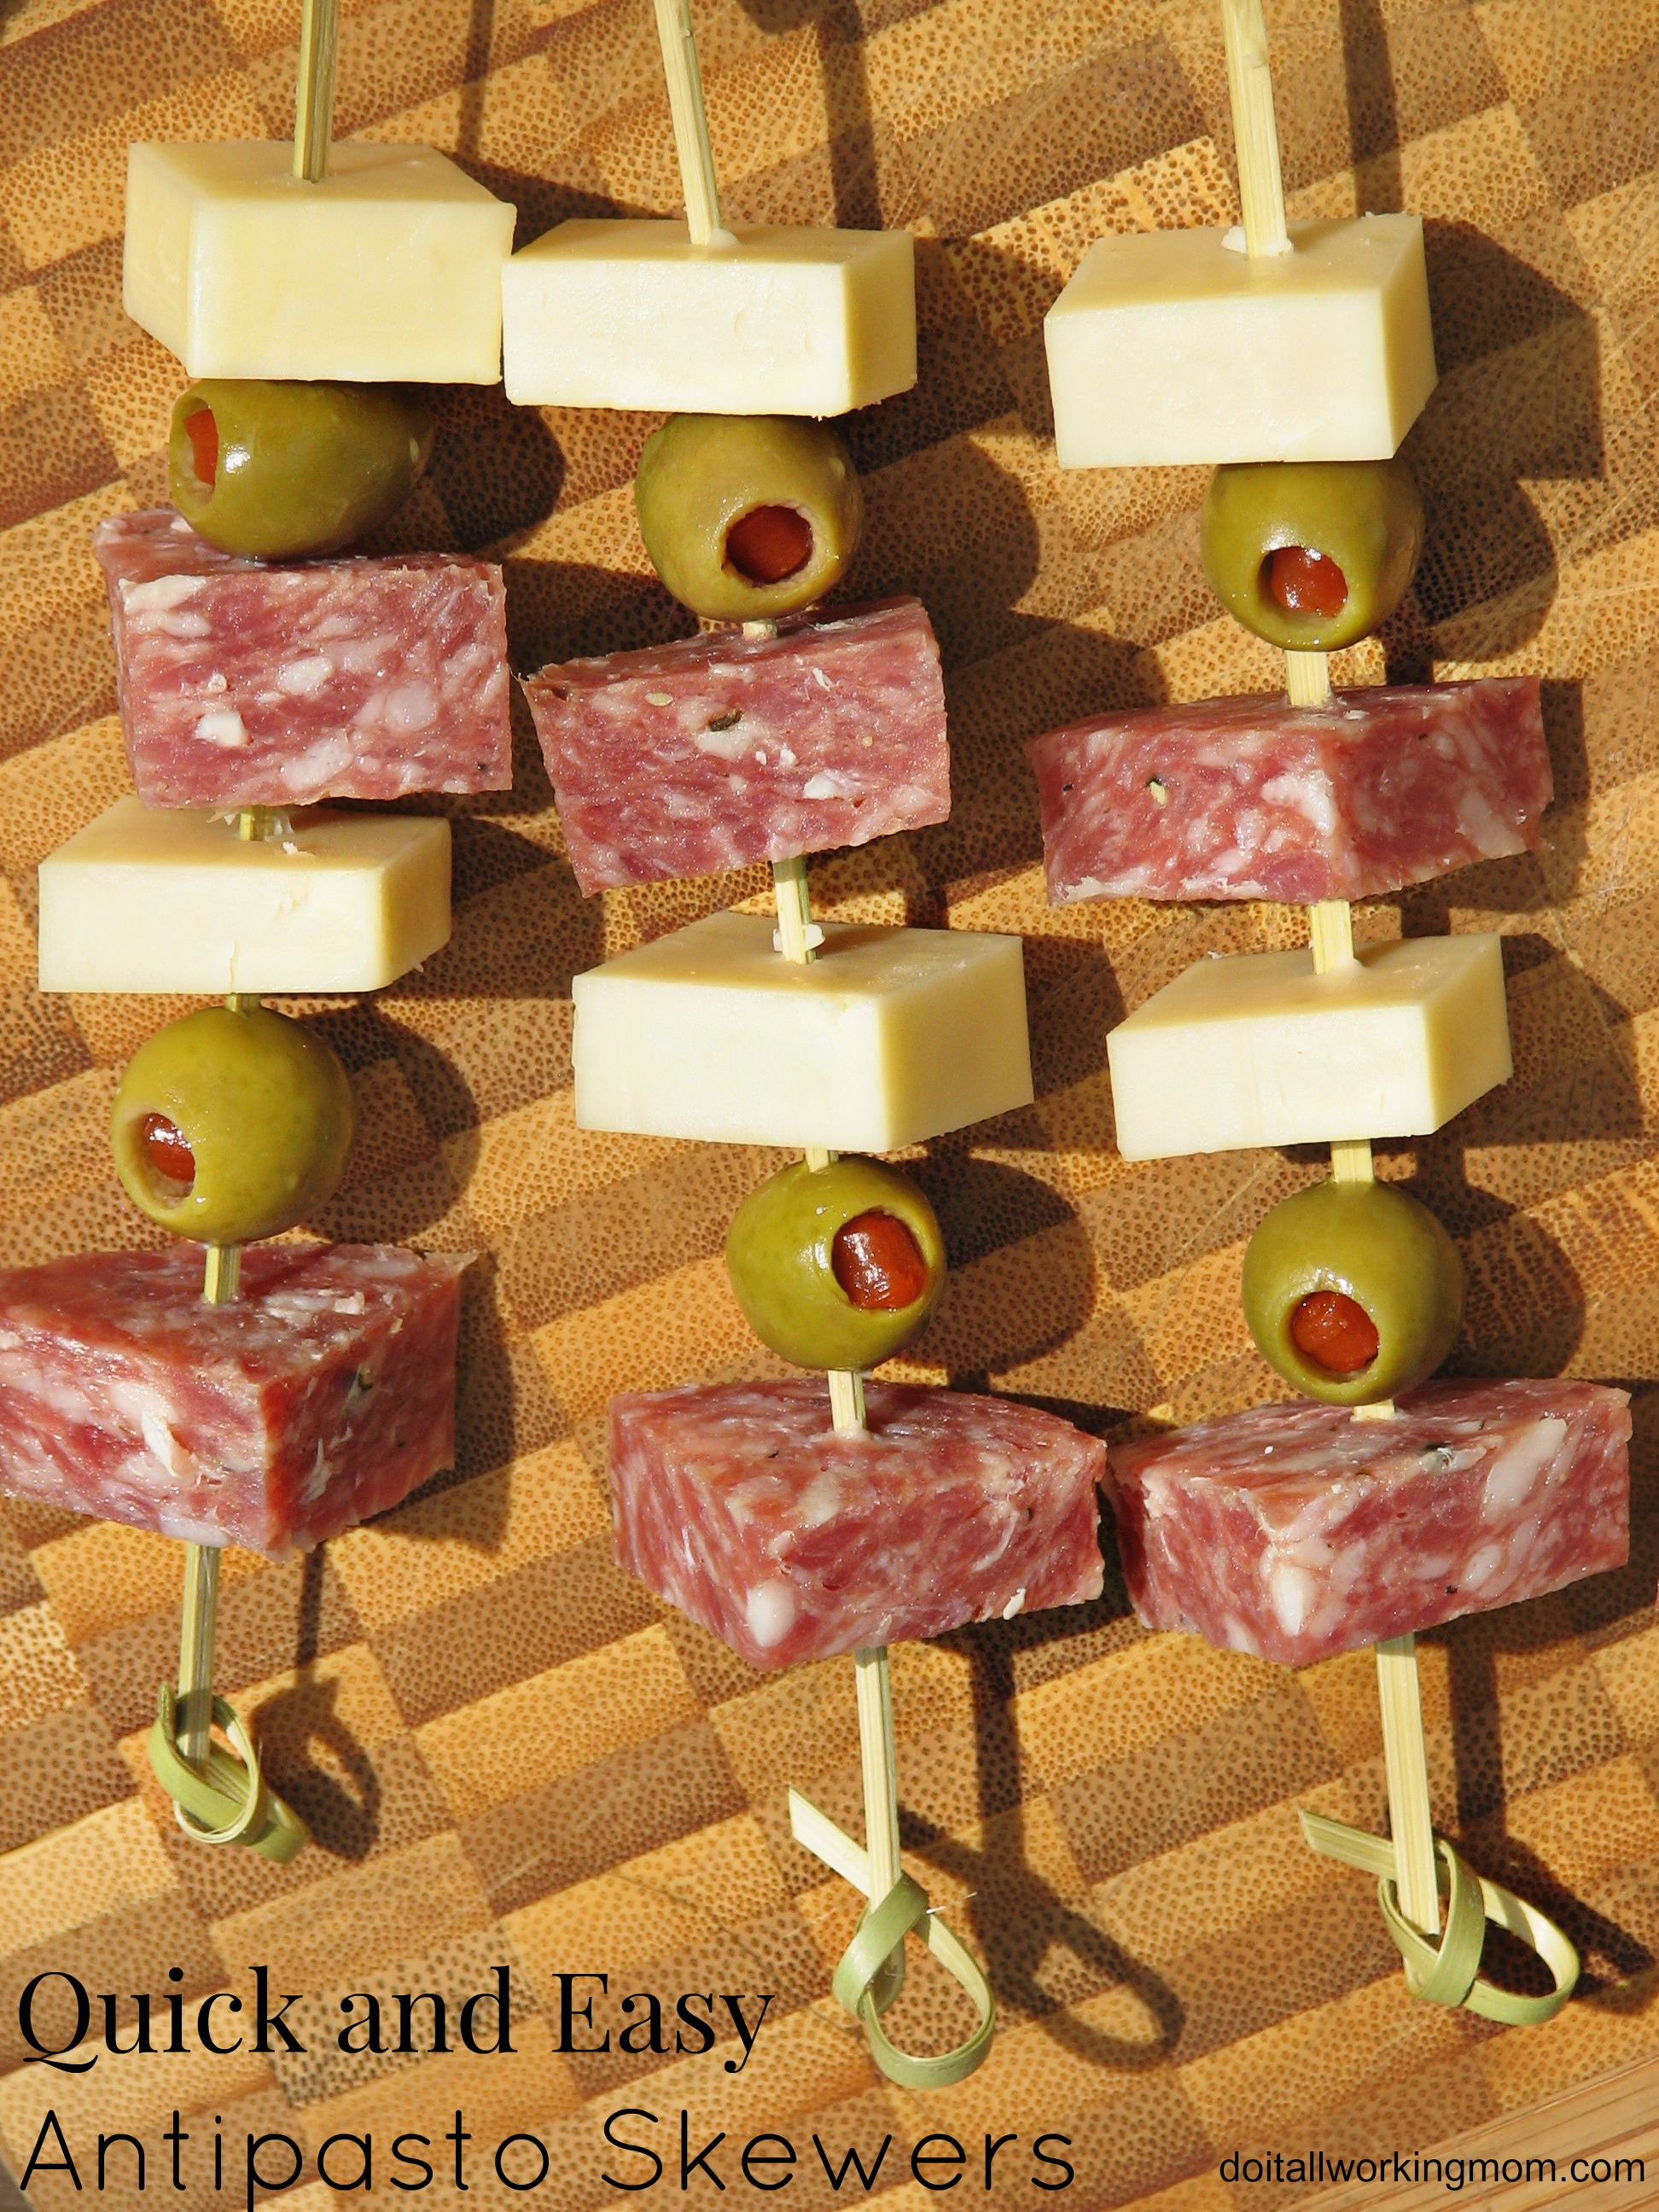 Quick and Easy Antipasto Skewers